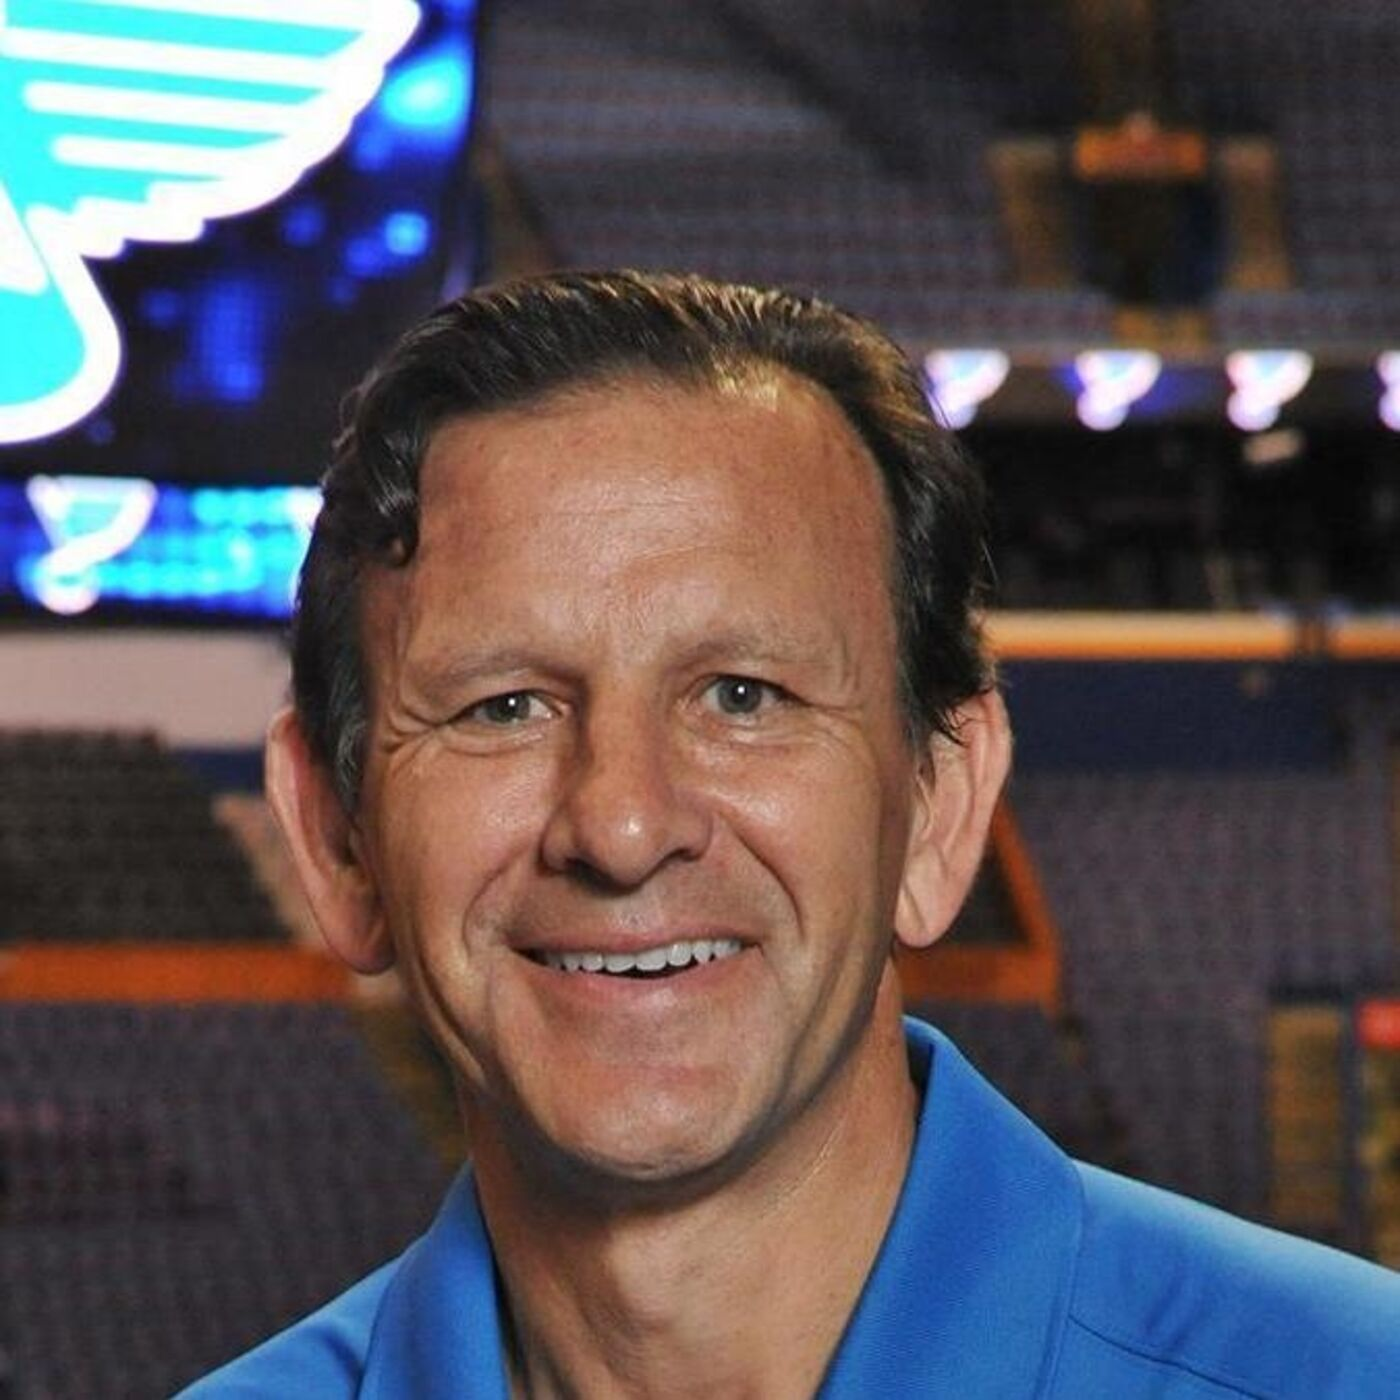 CEO of St. Louis Blues (Stanley Cup Holders) – Chris Zimmerman